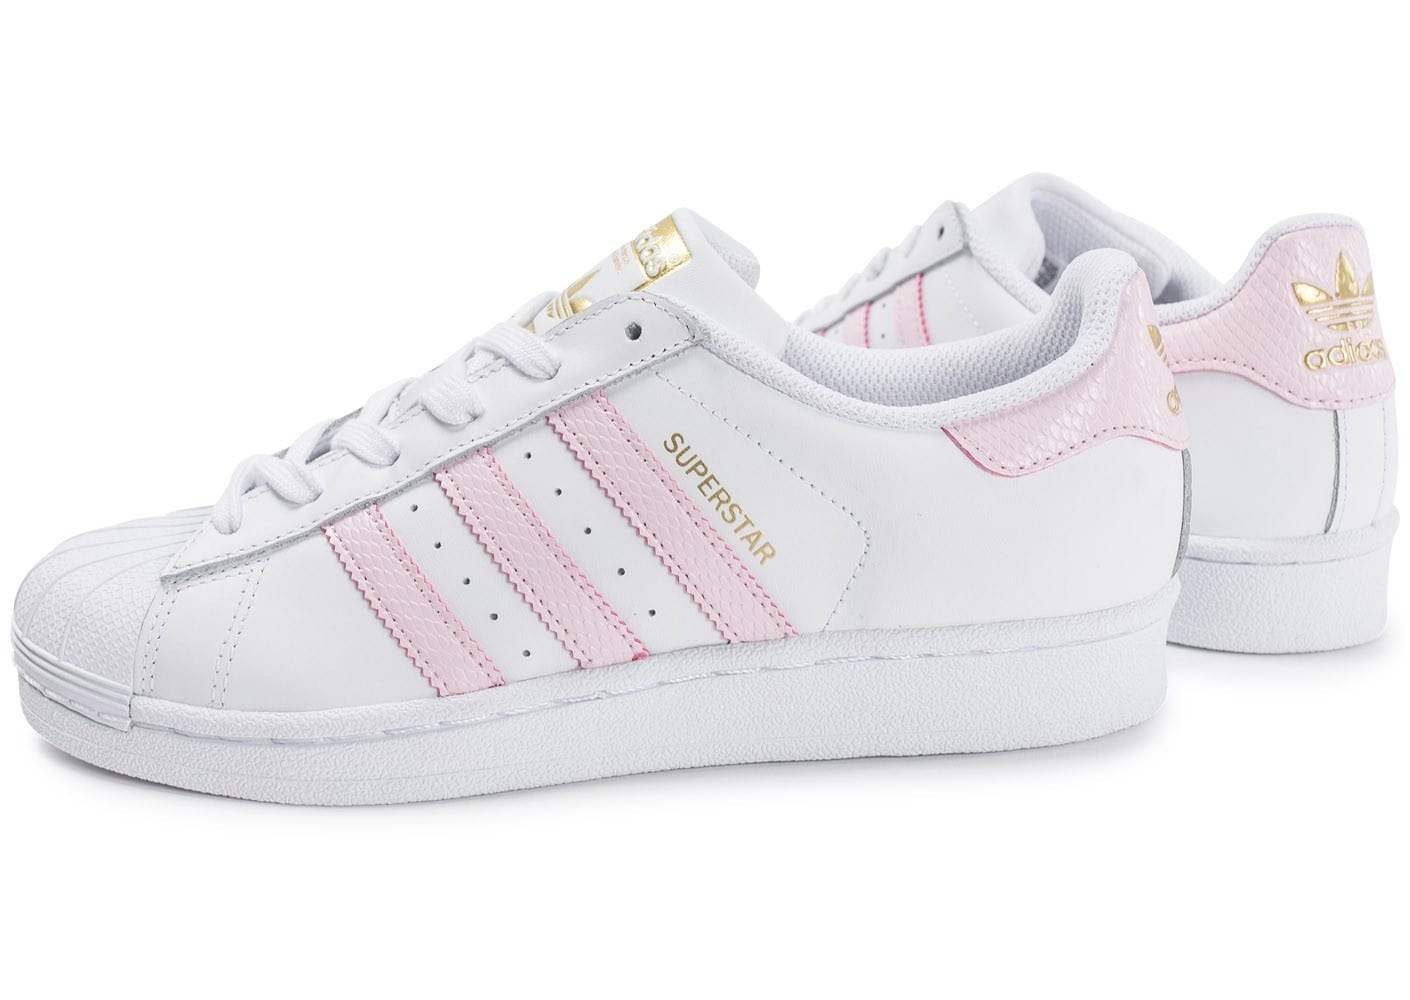 adidas superstar blanche et rose chaussures adidas chausport. Black Bedroom Furniture Sets. Home Design Ideas